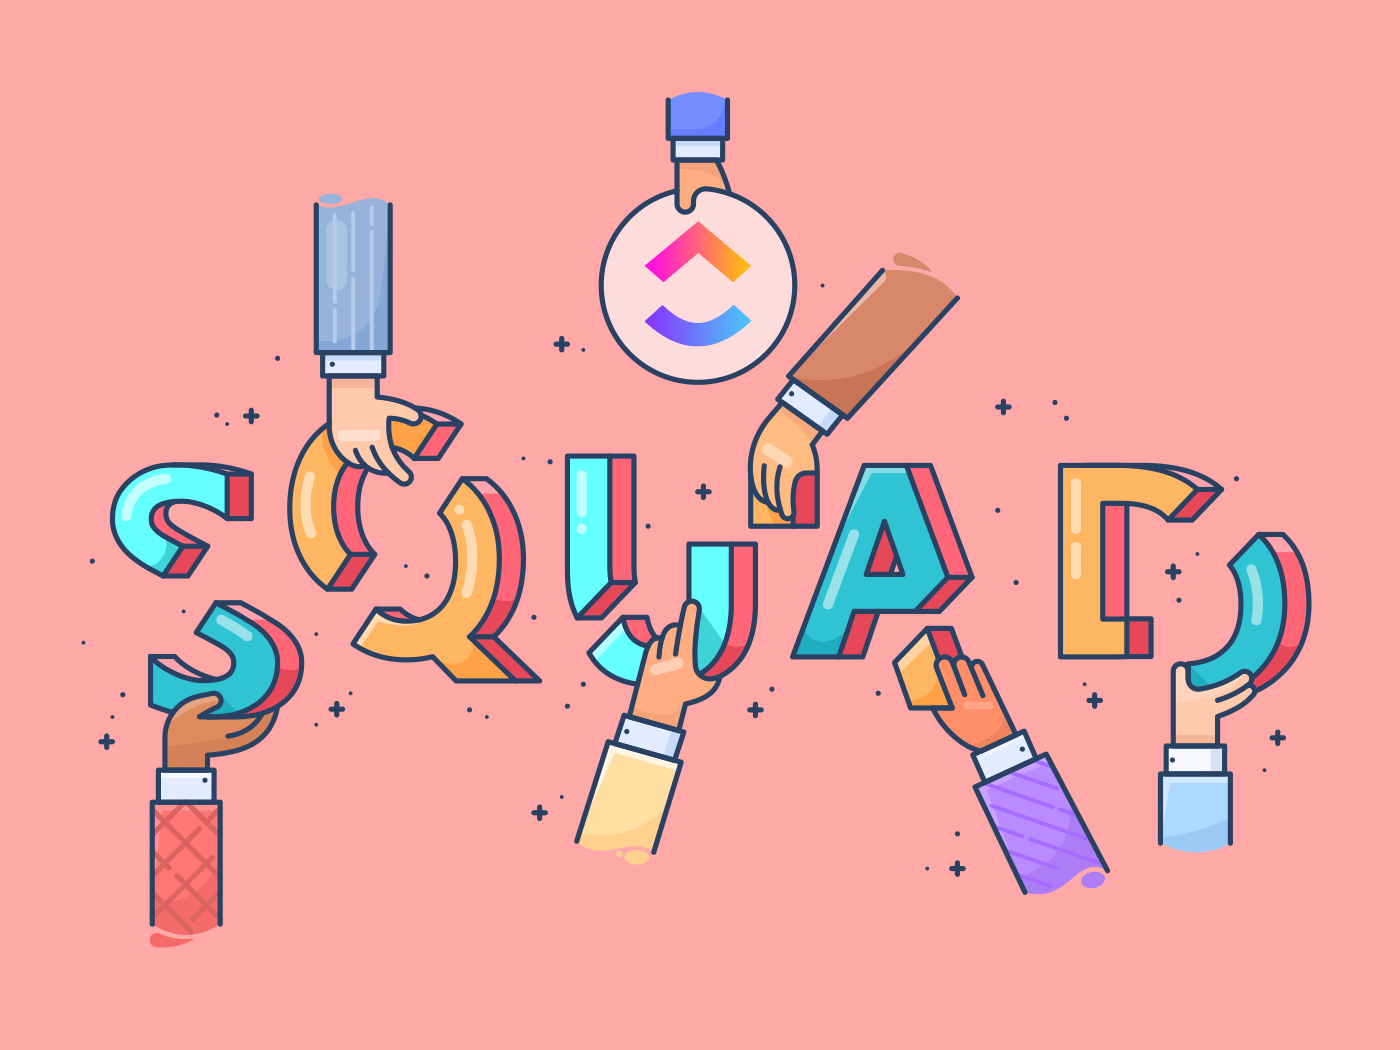 How Slite Uses Squads for Better Product Development